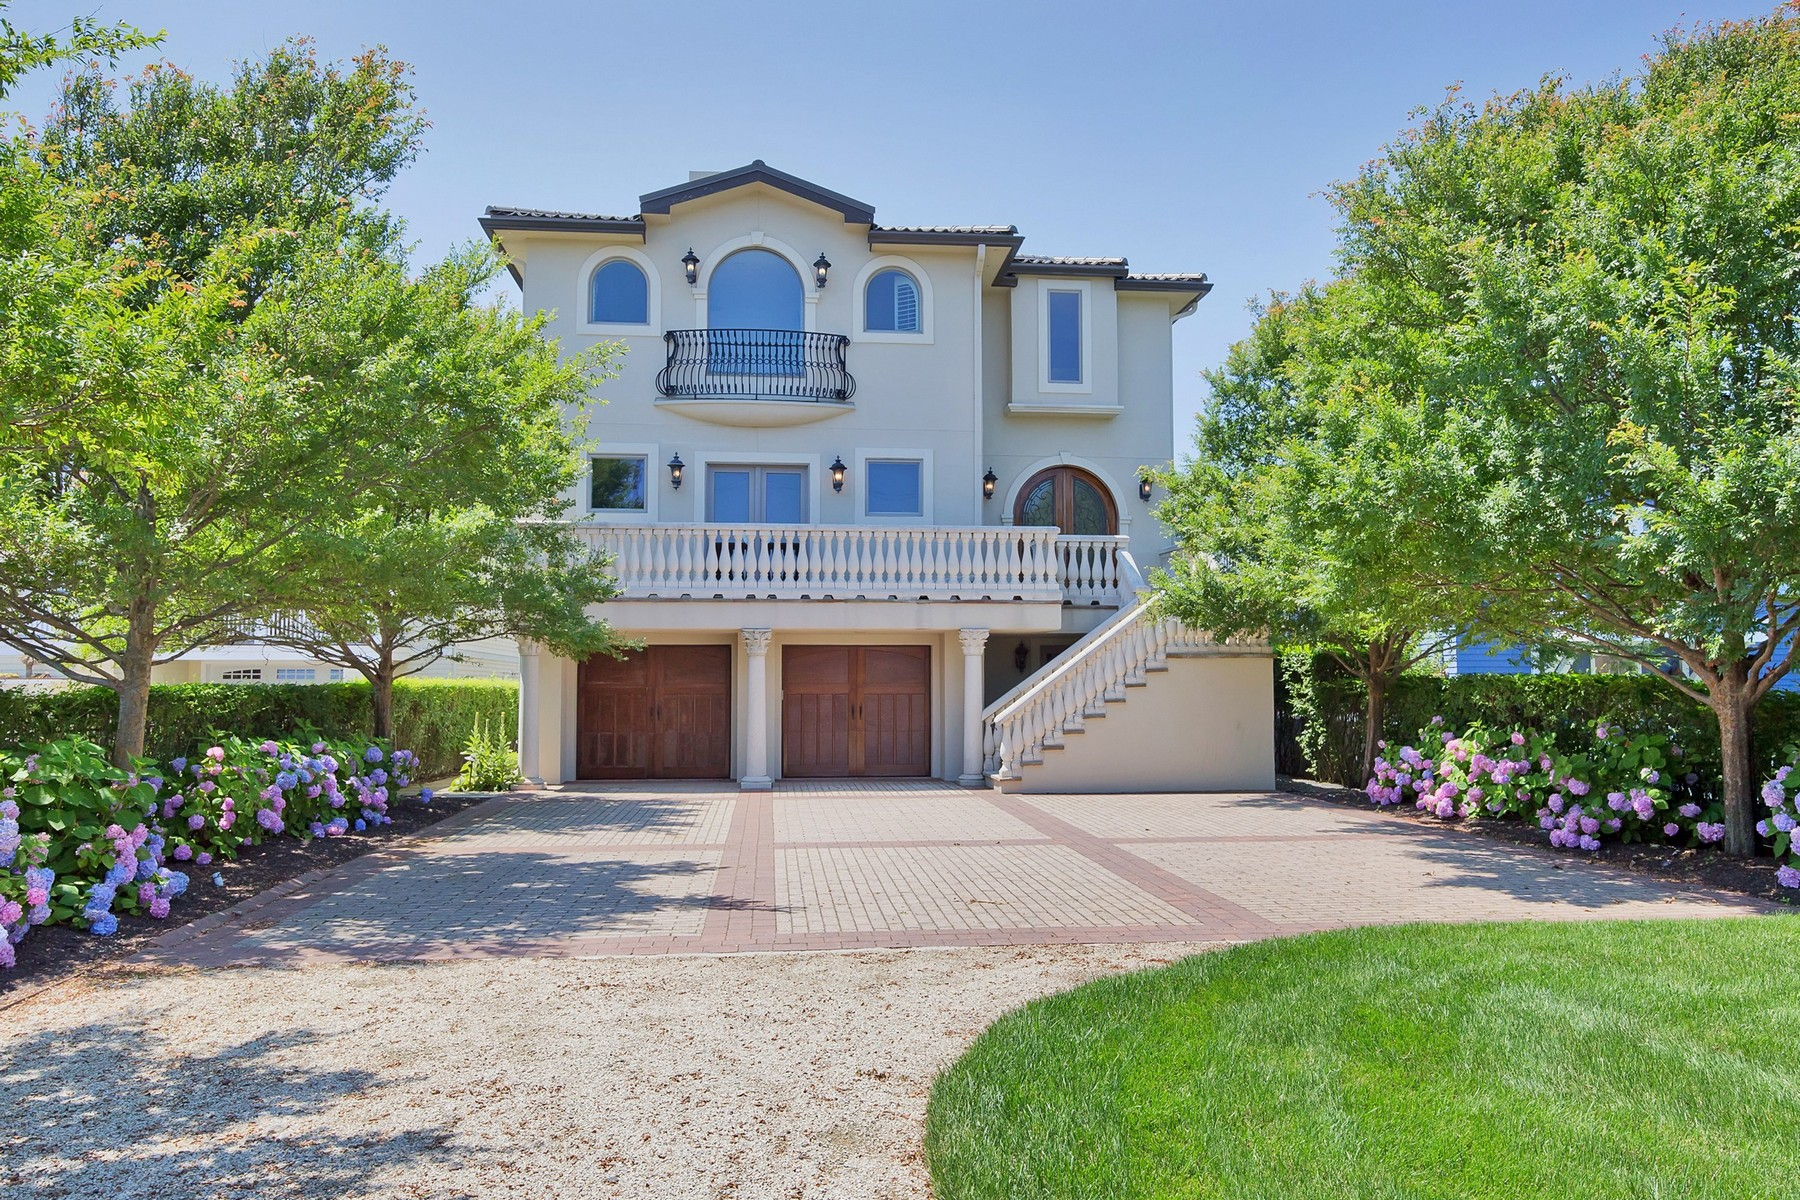 Single Family Home for Sale at 314 Ocean Ave., Sea Bright Sea Bright, New Jersey 07760 United States